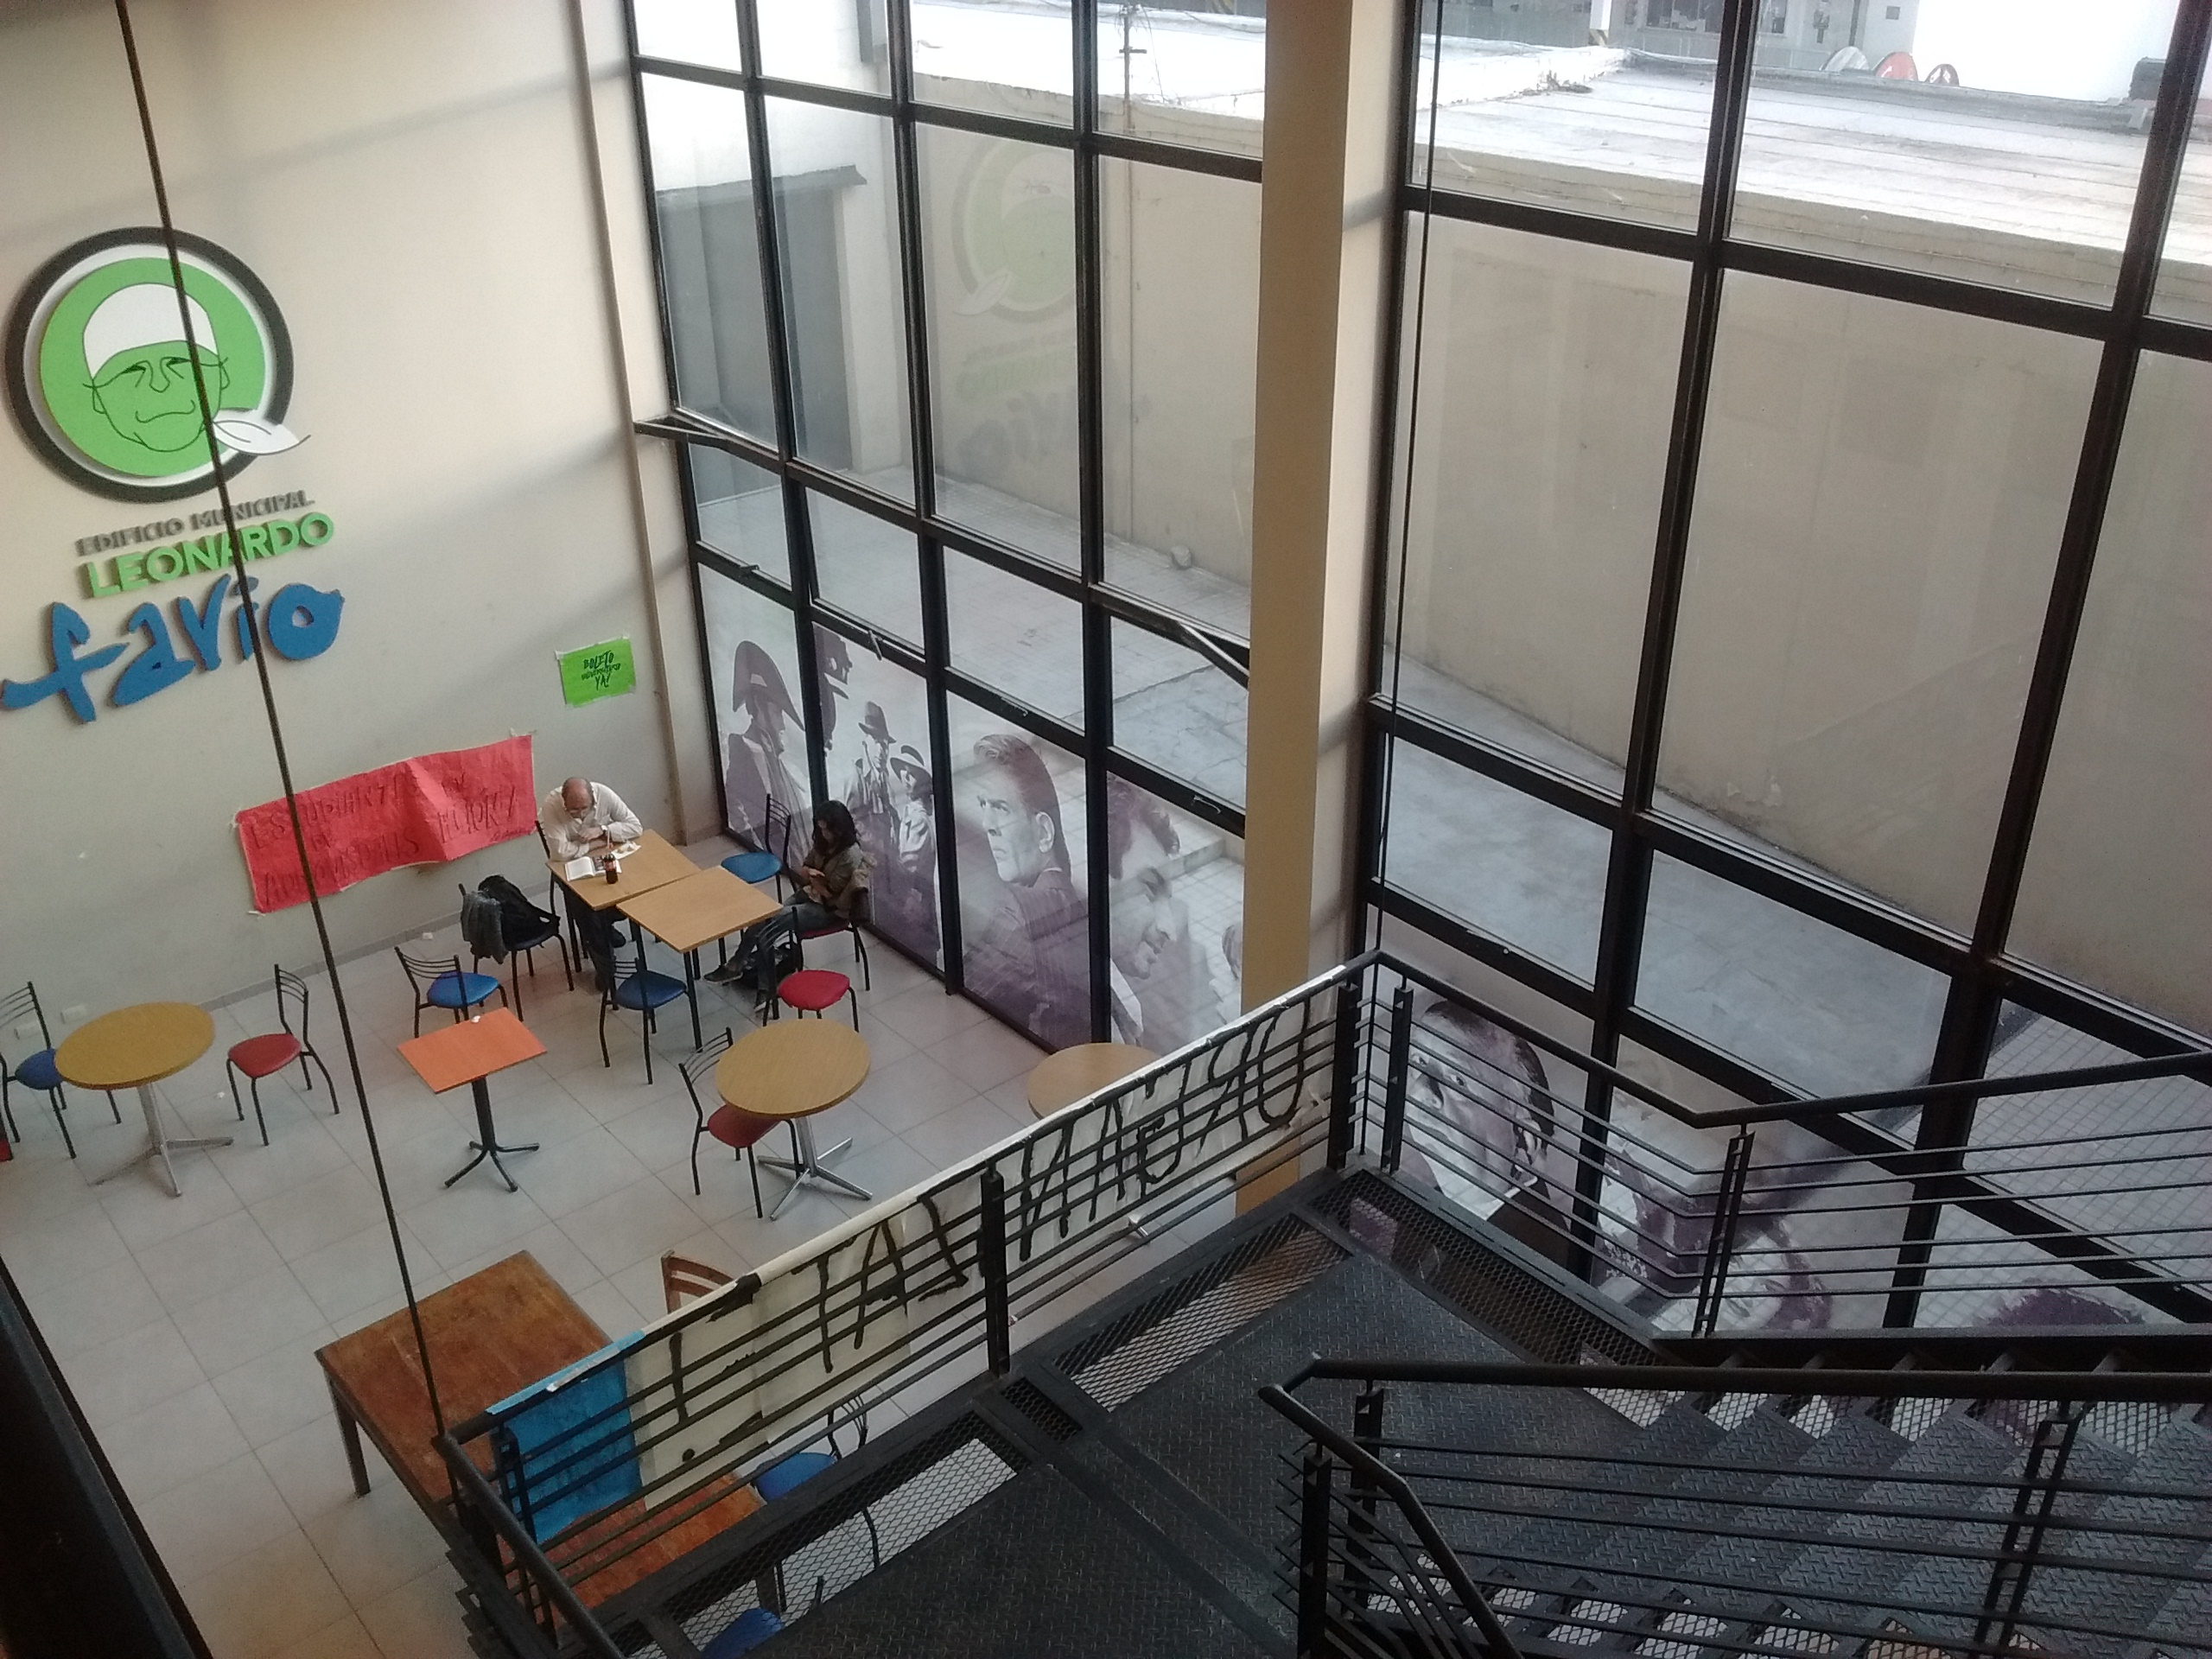 interior 2 - Instituto Municipal de Cine